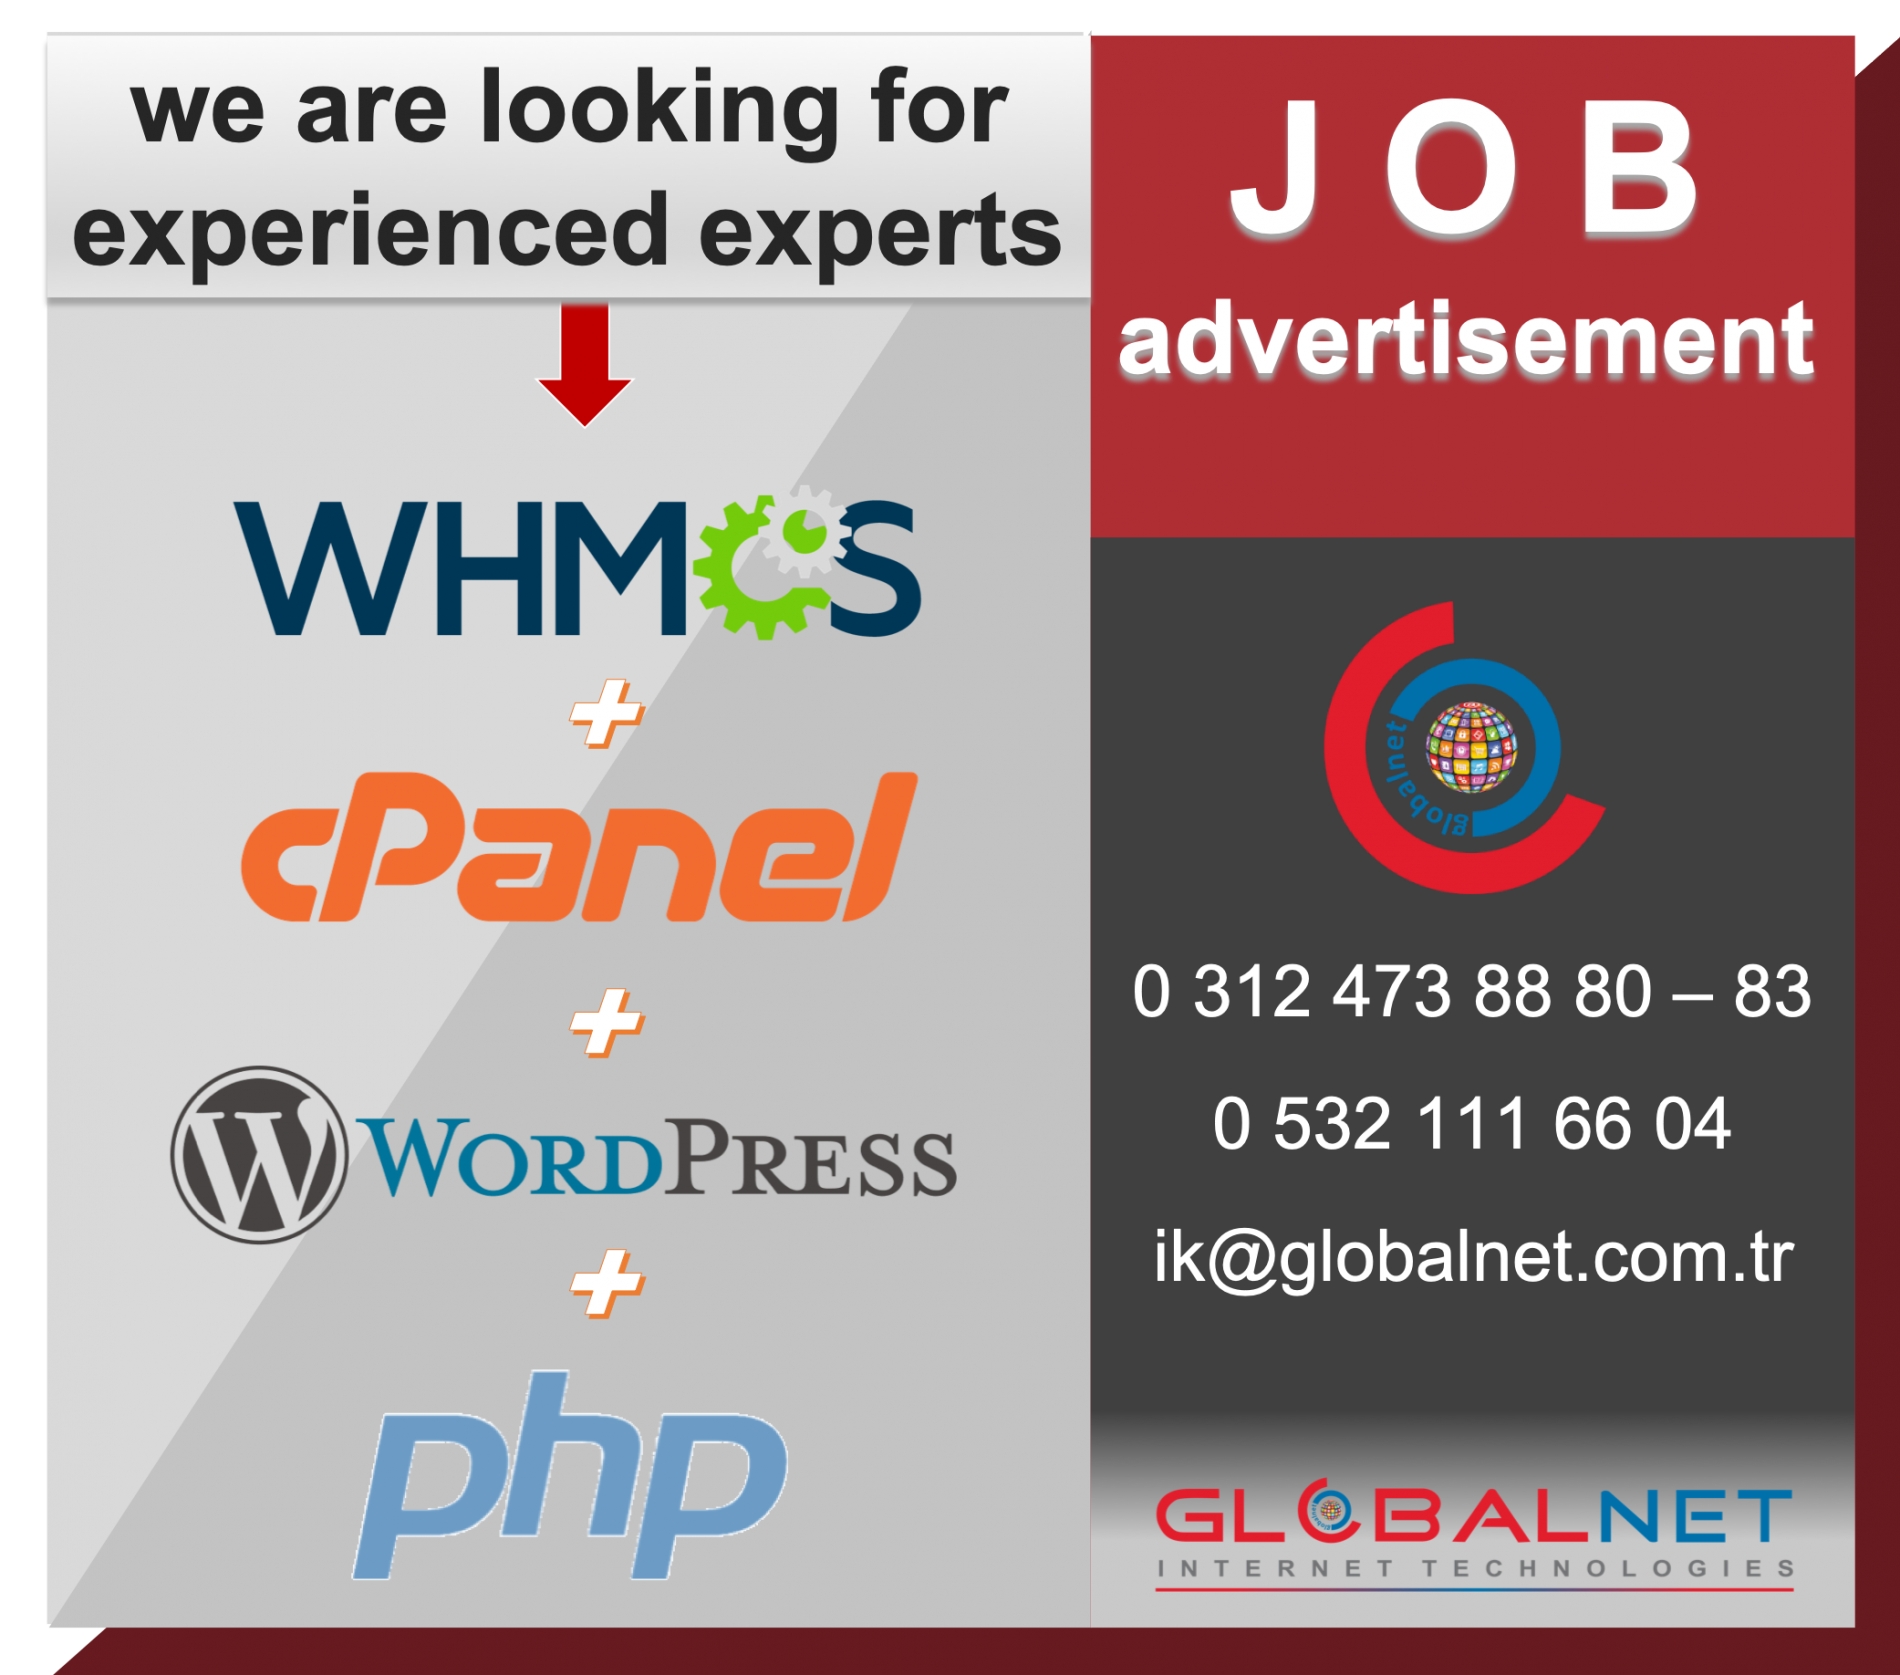 JOB Advertisement WHMCS + CPANEL + WORDPRESS + PHP